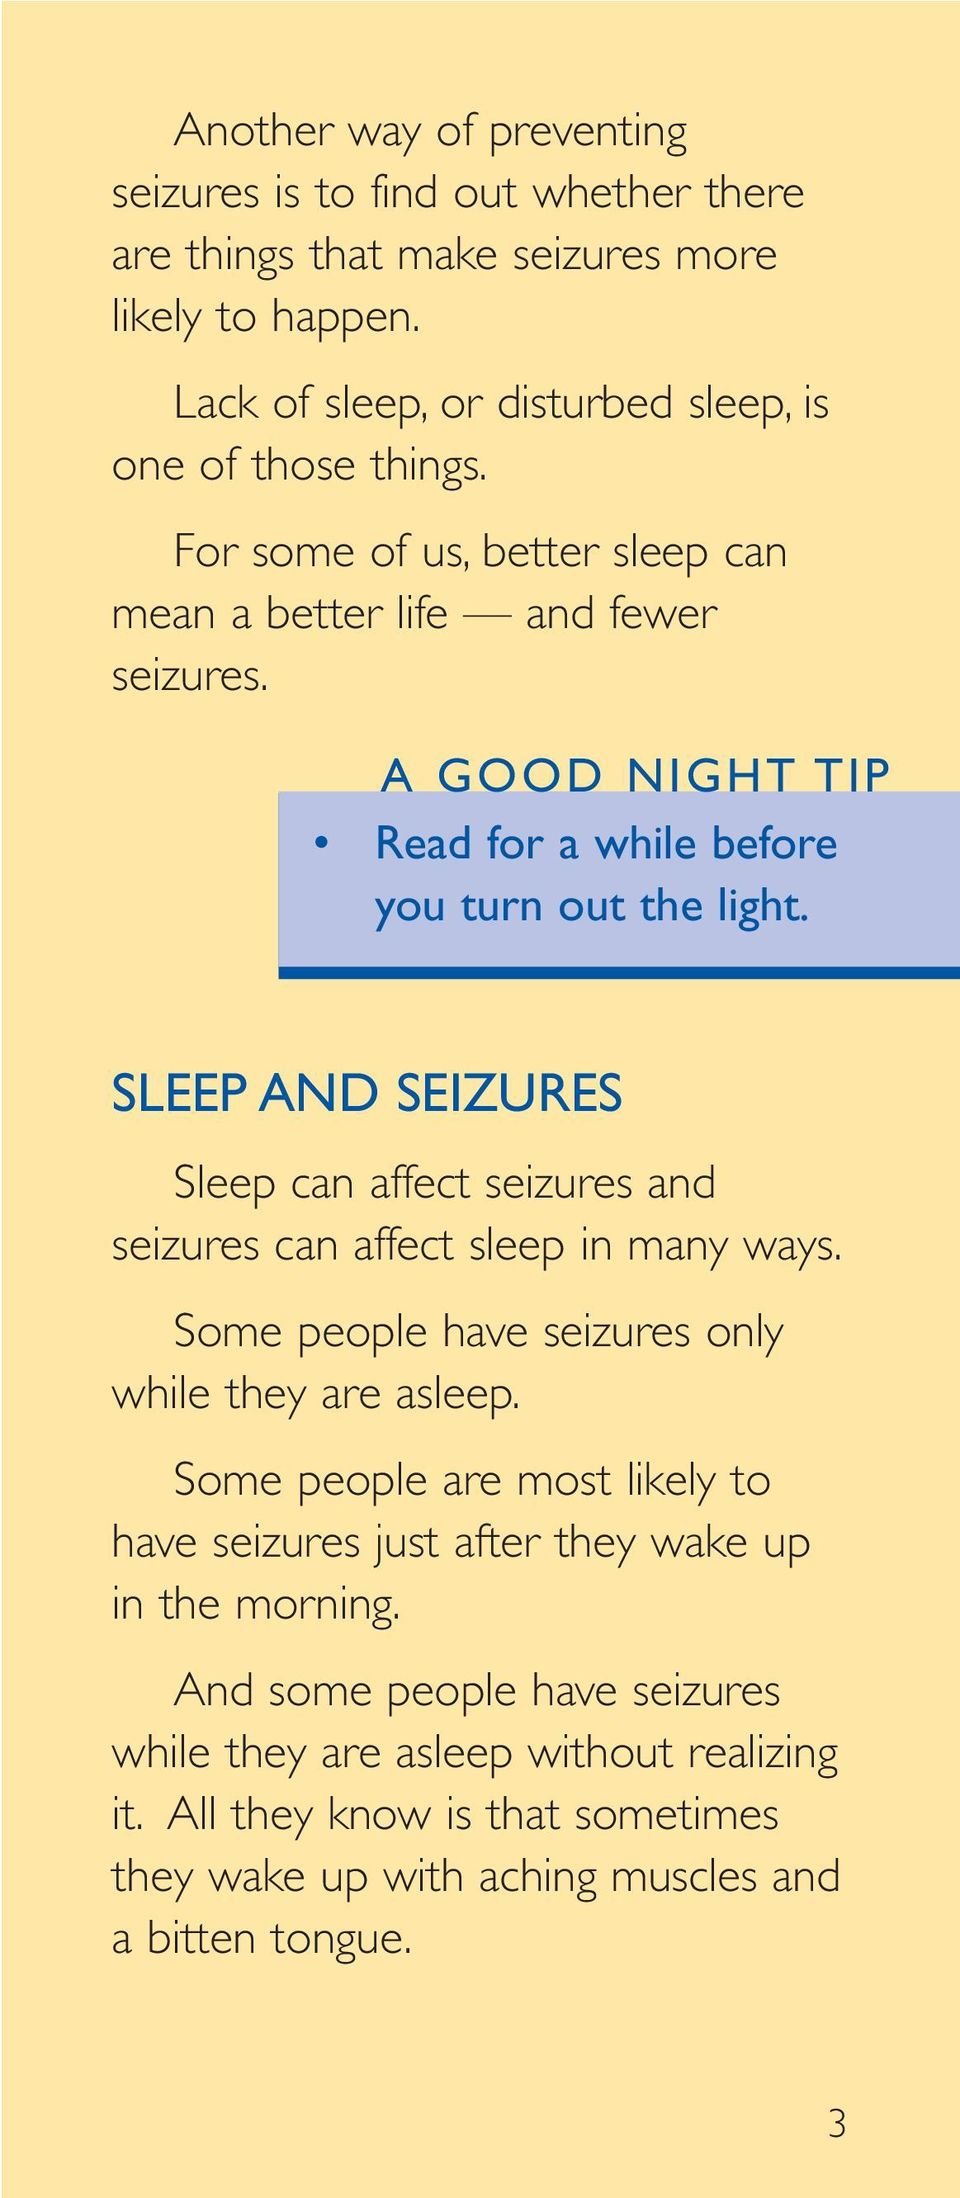 SLEEP AND SEIZURES Sleep can affect seizures and seizures can affect sleep in many ways. Some people have seizures only while they are asleep.